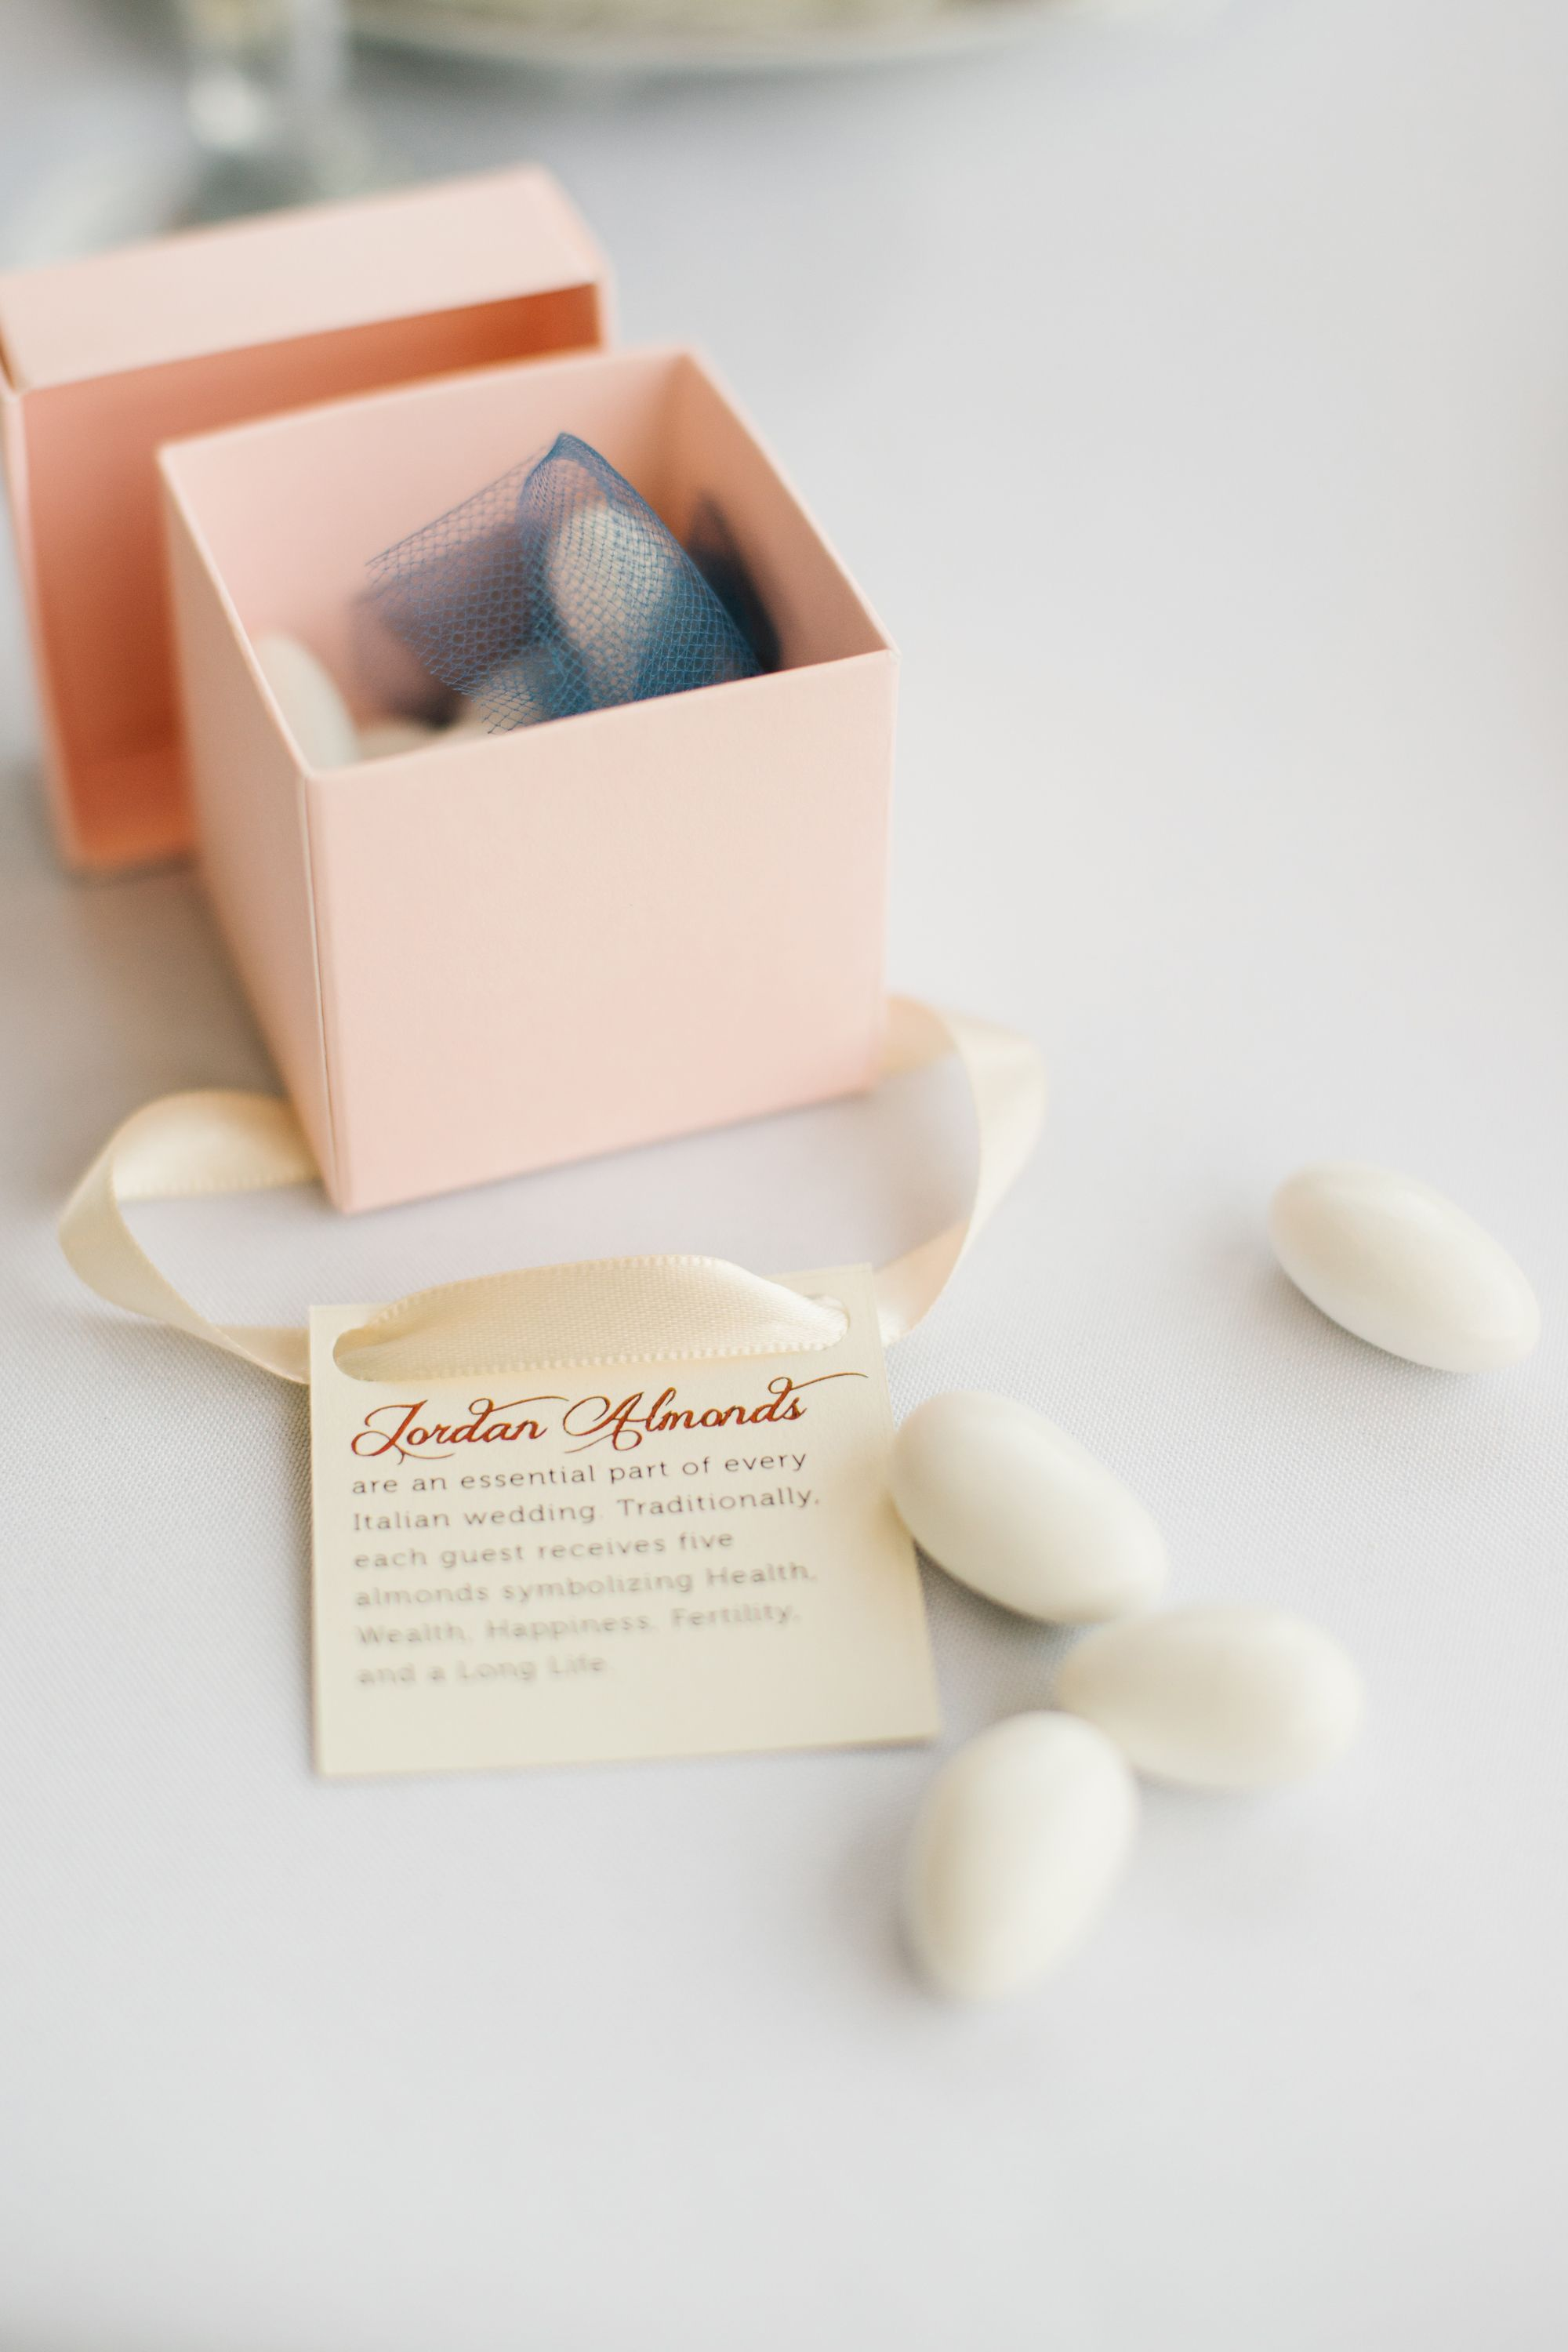 All About Jordan Almonds Wedding Favors | Almond wedding favours ...